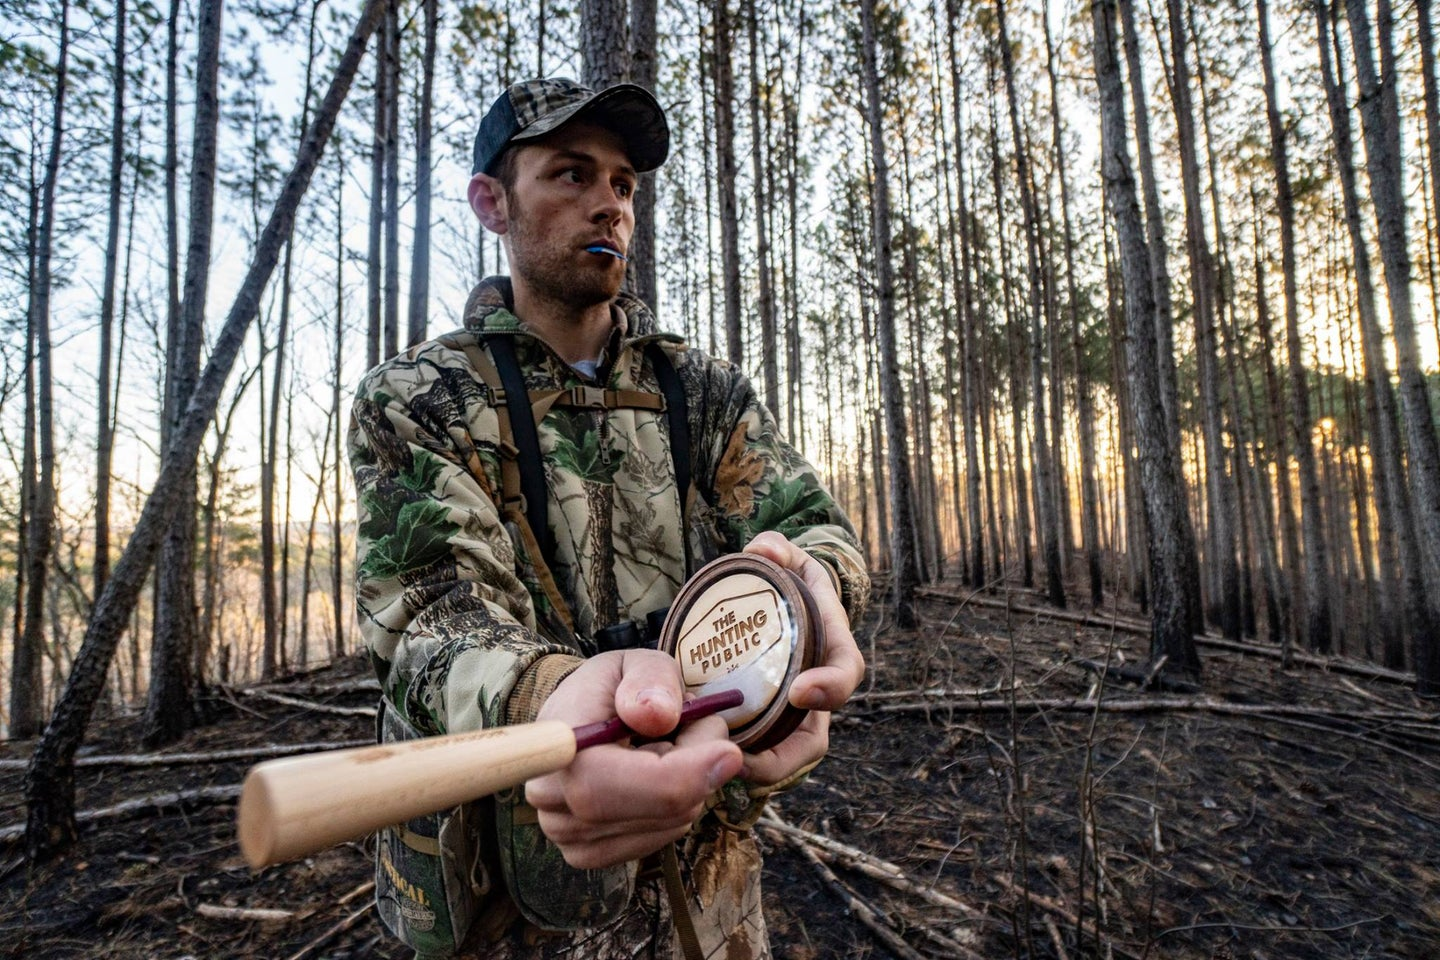 Aaron Warbritton of The Hunting Public working a pot and peg style call.